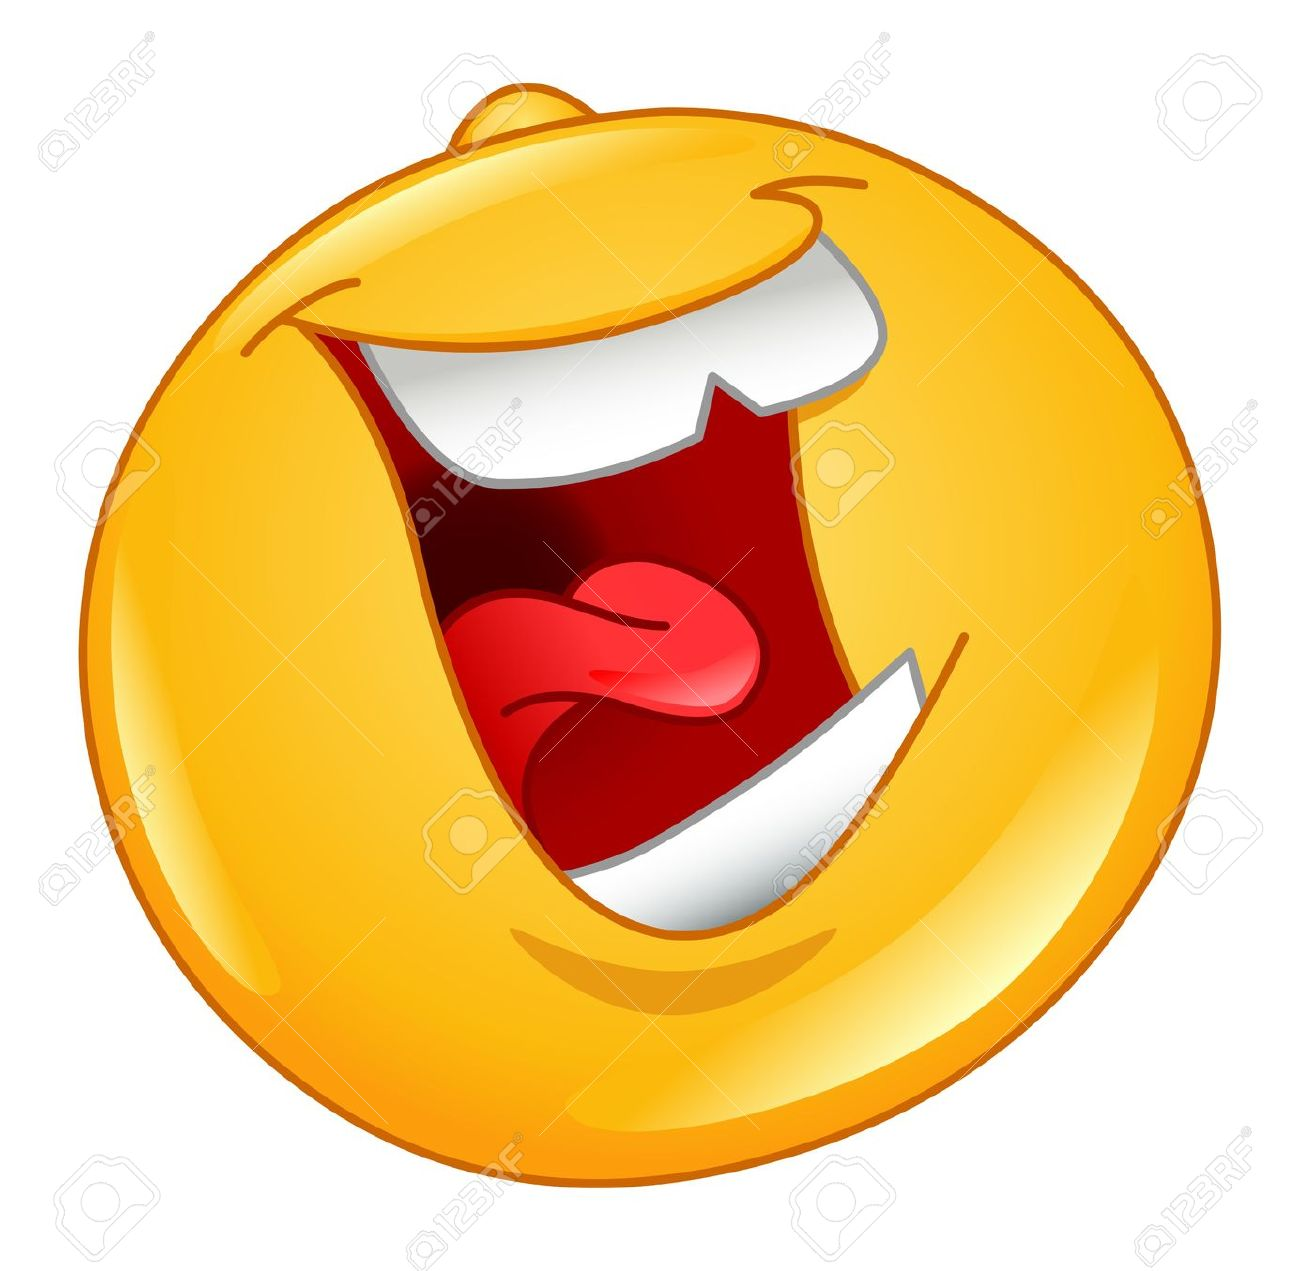 Laughing mouth free clipart png free Laughing Out Loud Emoticon Royalty Free Cliparts, Vectors, And ... png free